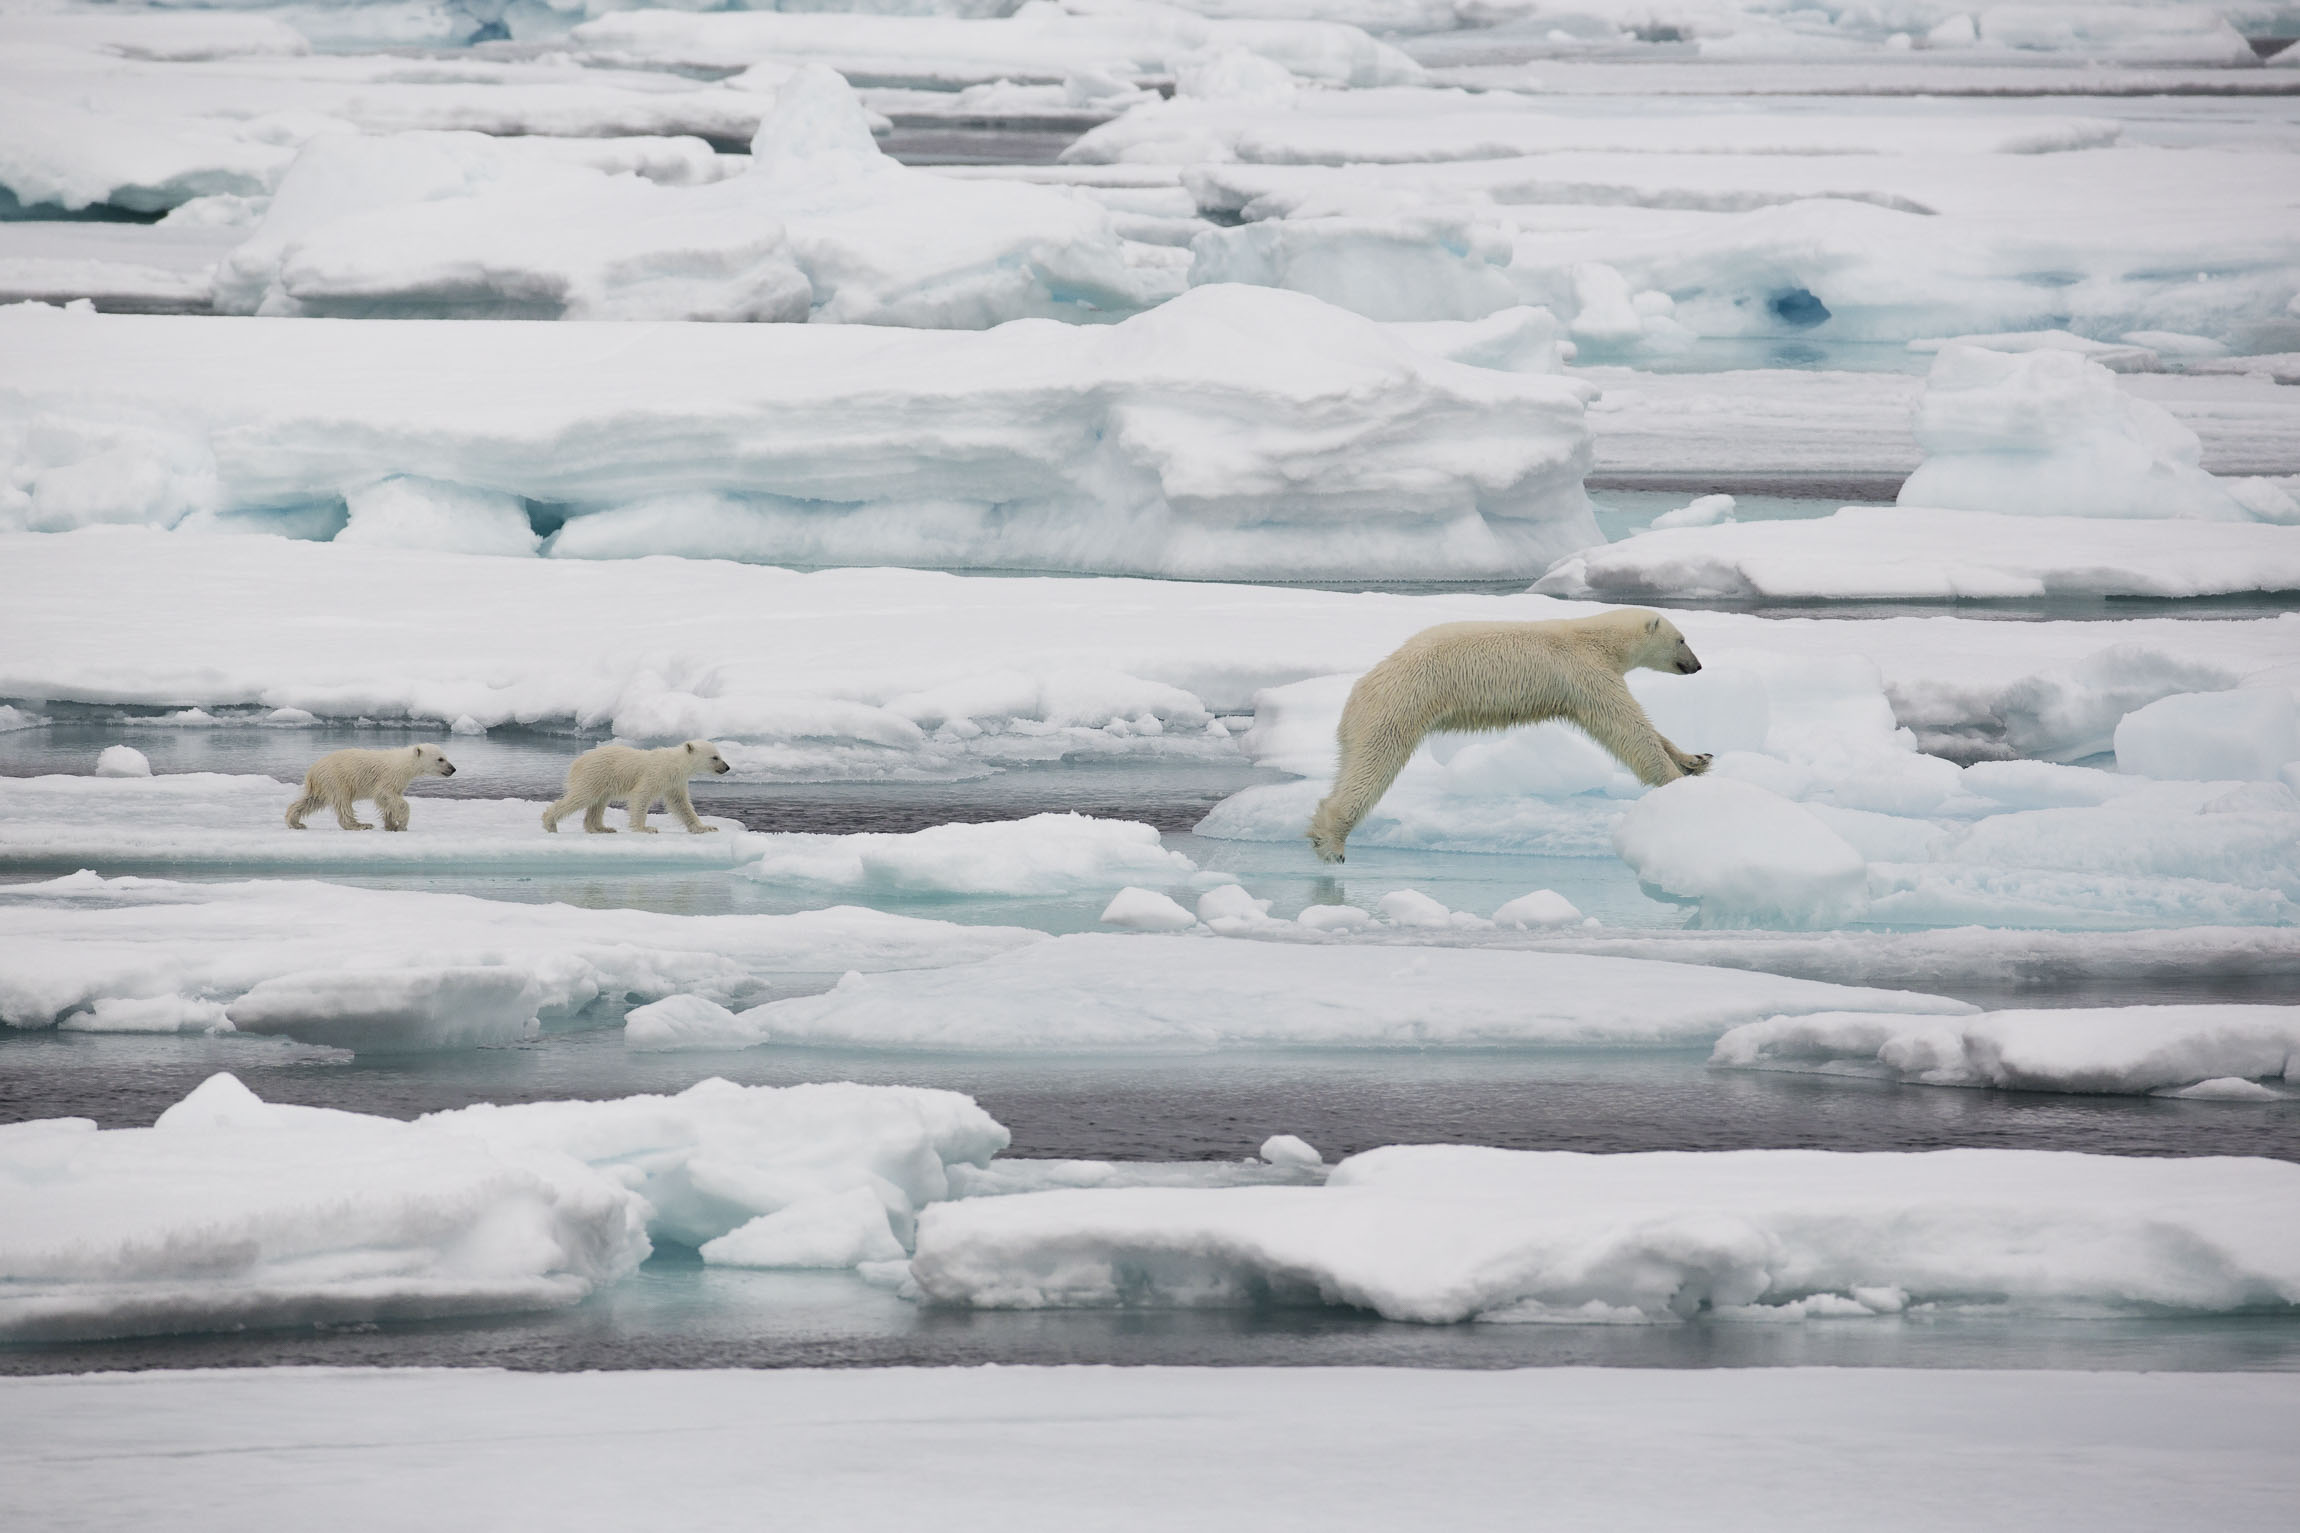 A mother polar bear jumping ice floes followed by two cubs